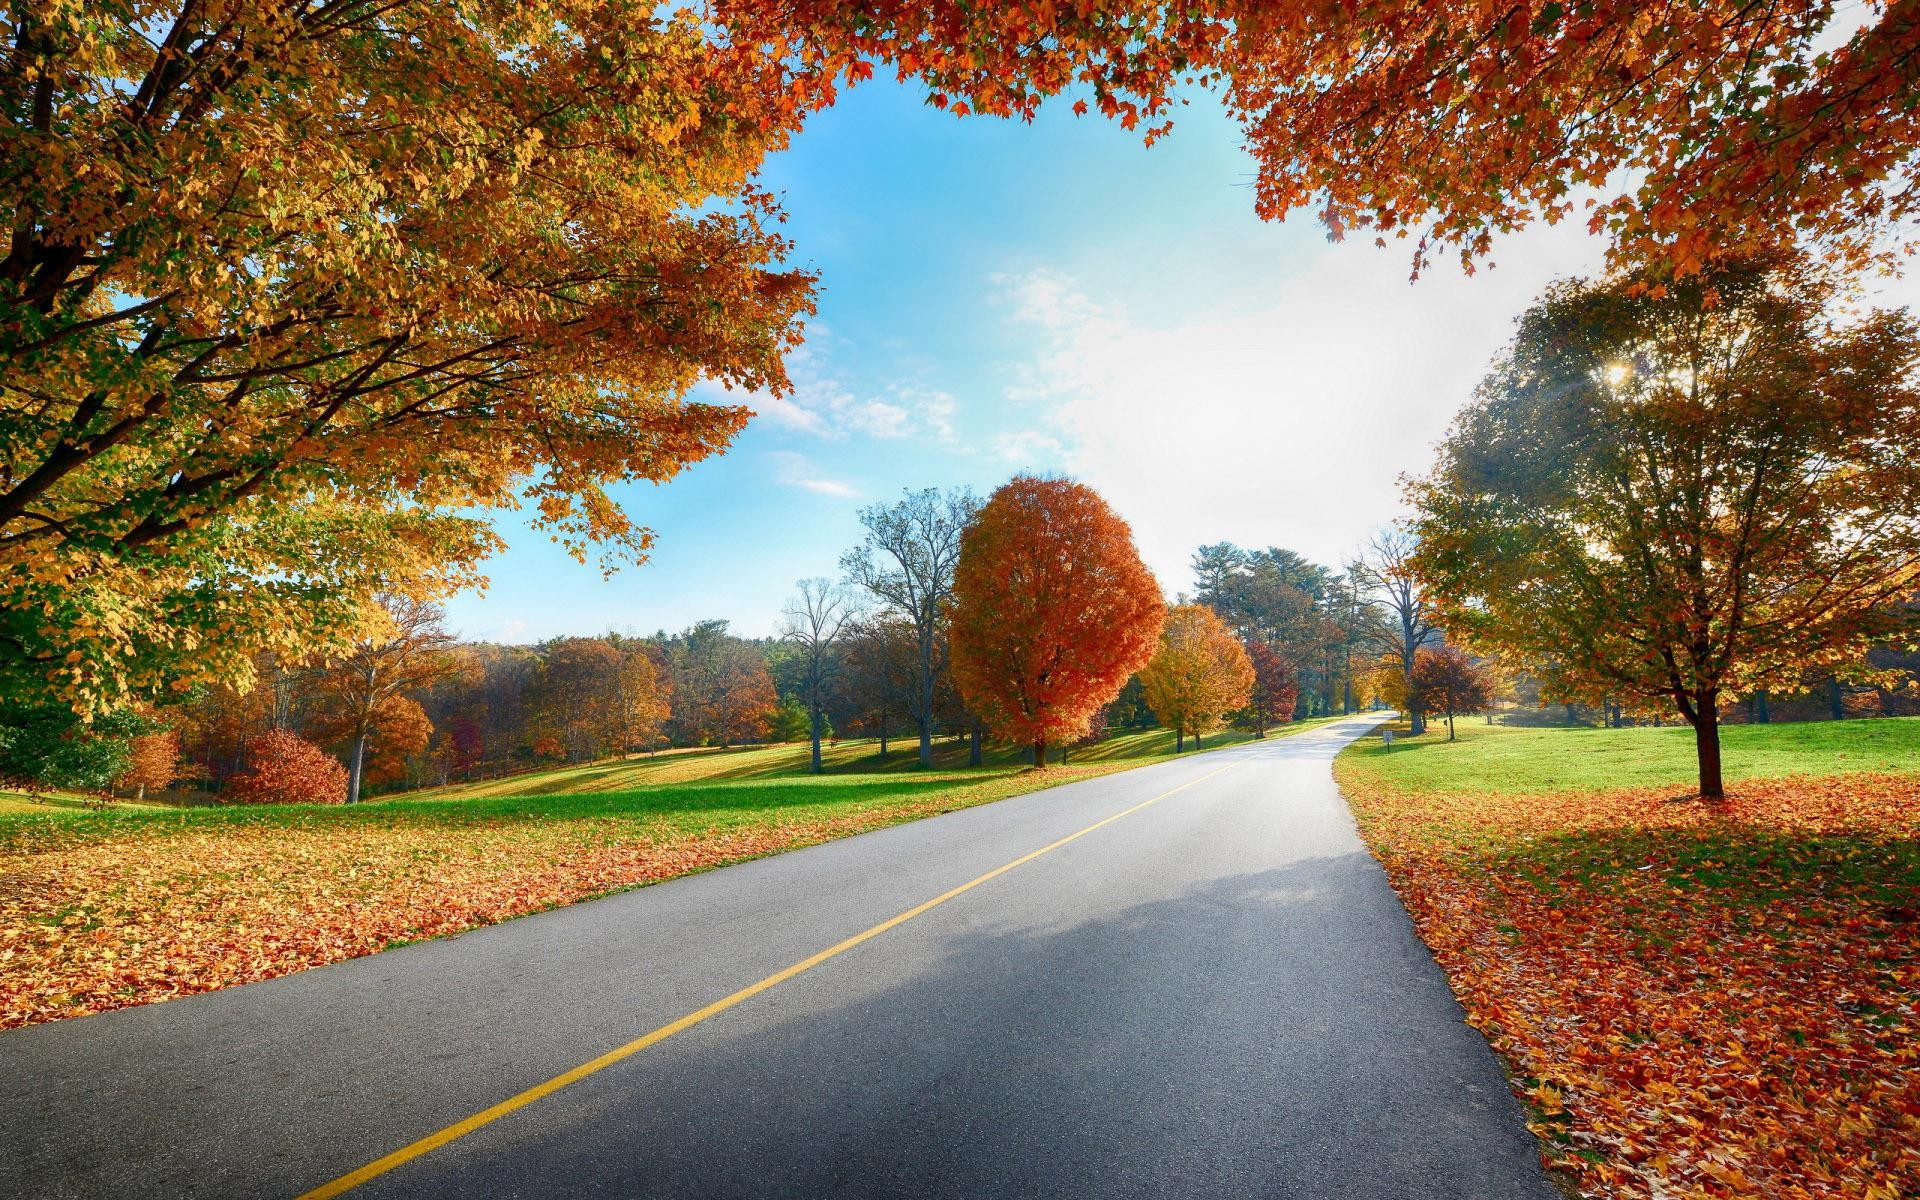 Country Road Autumn Desktop Wallpapers   New HD Wallpapers 1920x1200